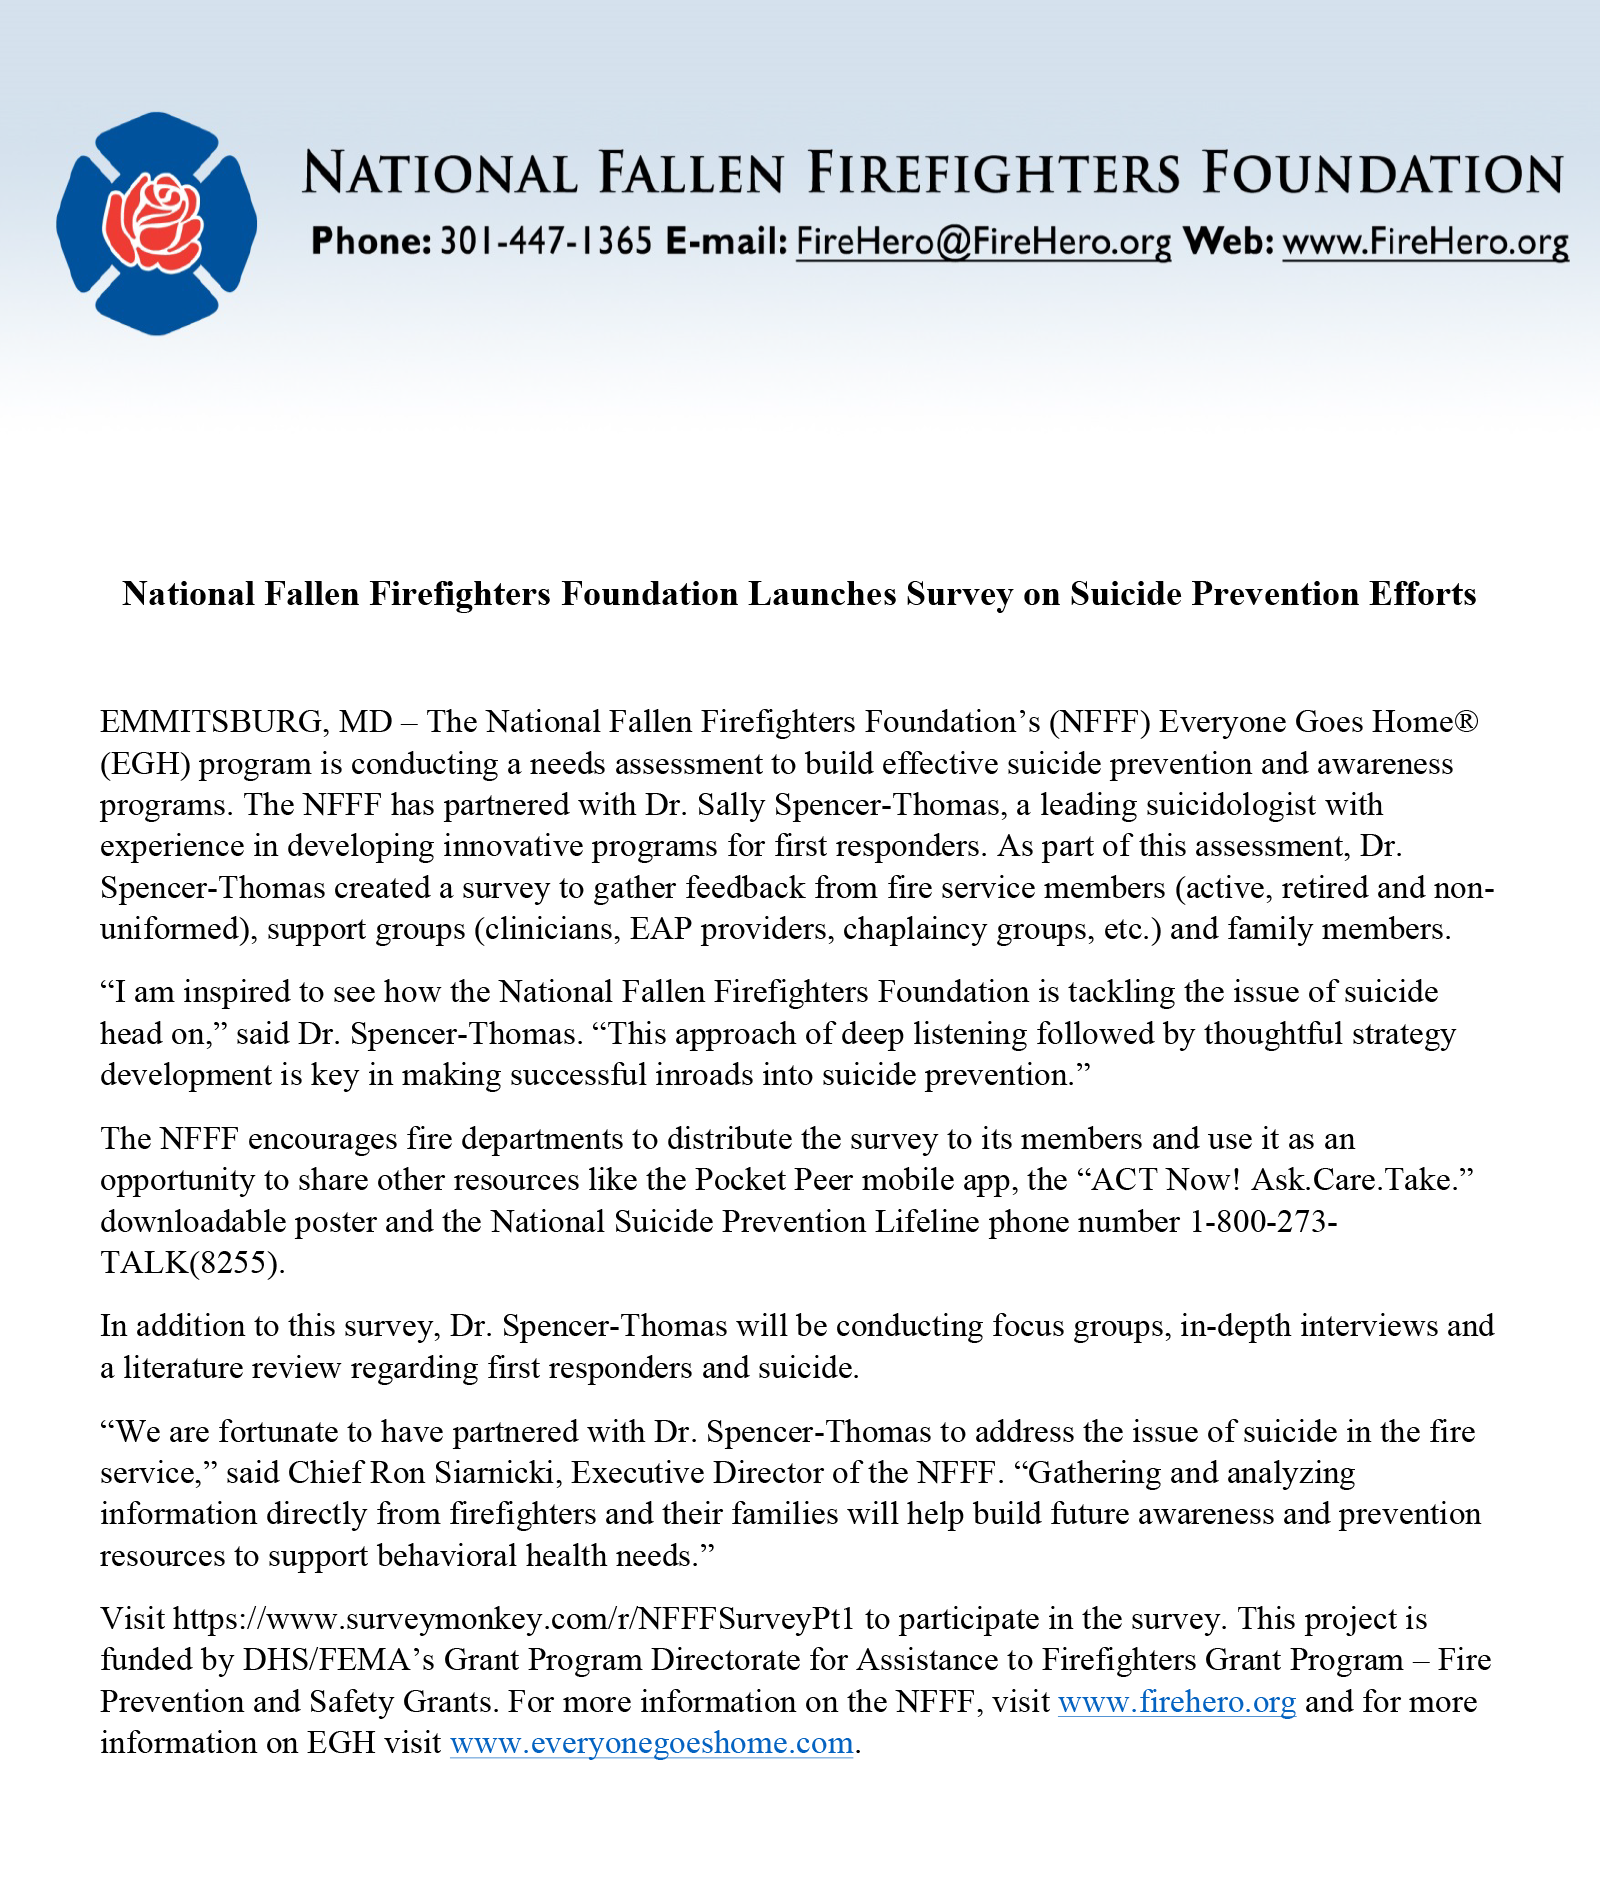 National Fallen Firefighters Foundation Launches Survey on Suicide Prevention Efforts